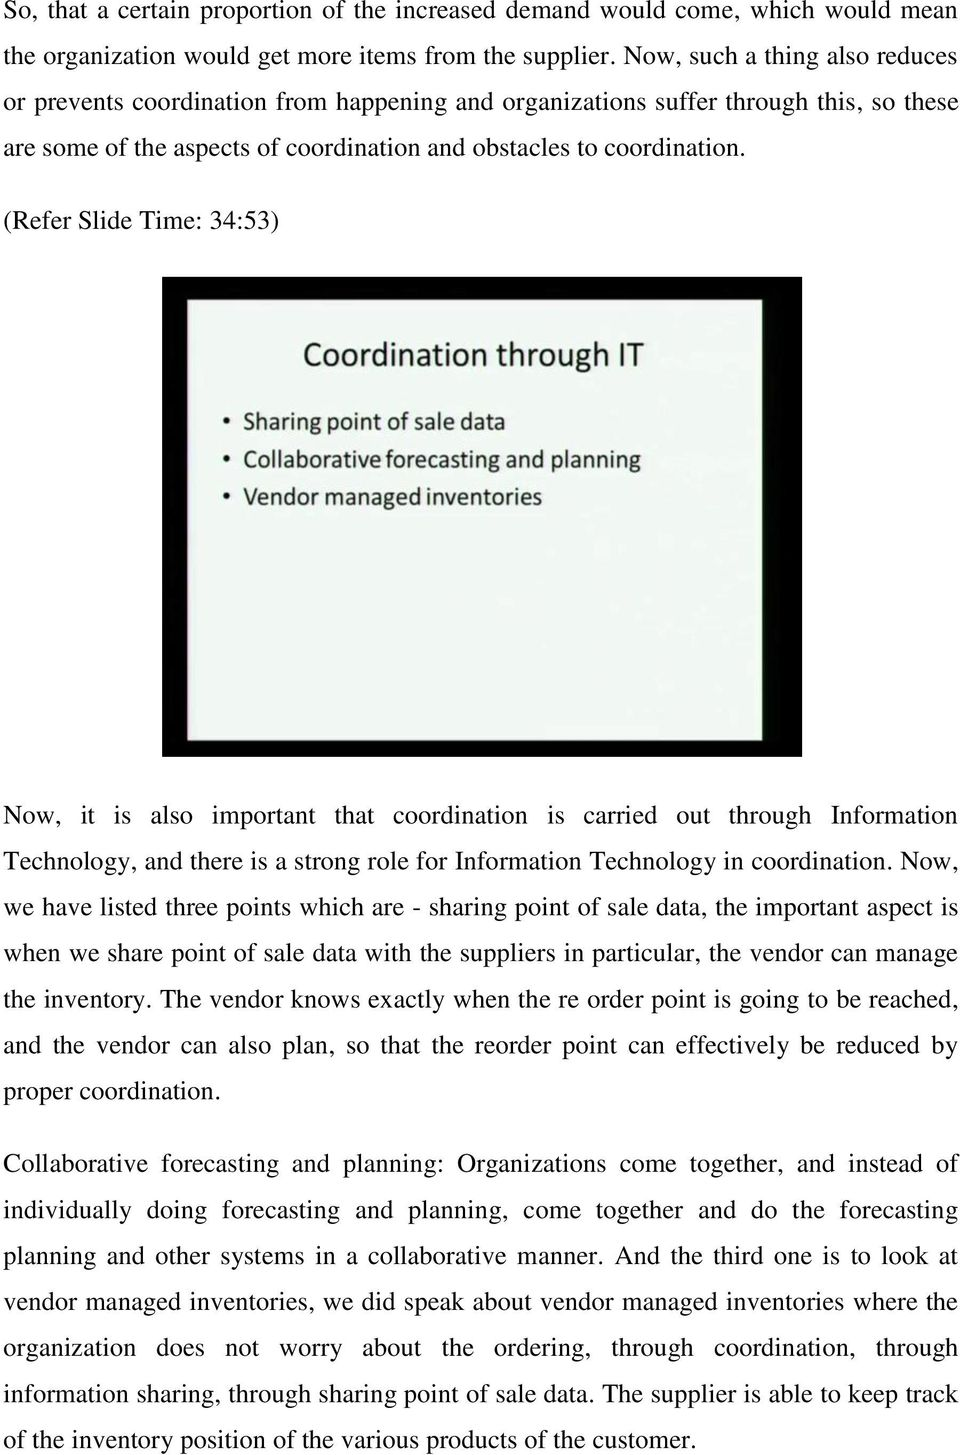 (Refer Slide Time: 34:53) Now, it is also important that coordination is carried out through Information Technology, and there is a strong role for Information Technology in coordination.